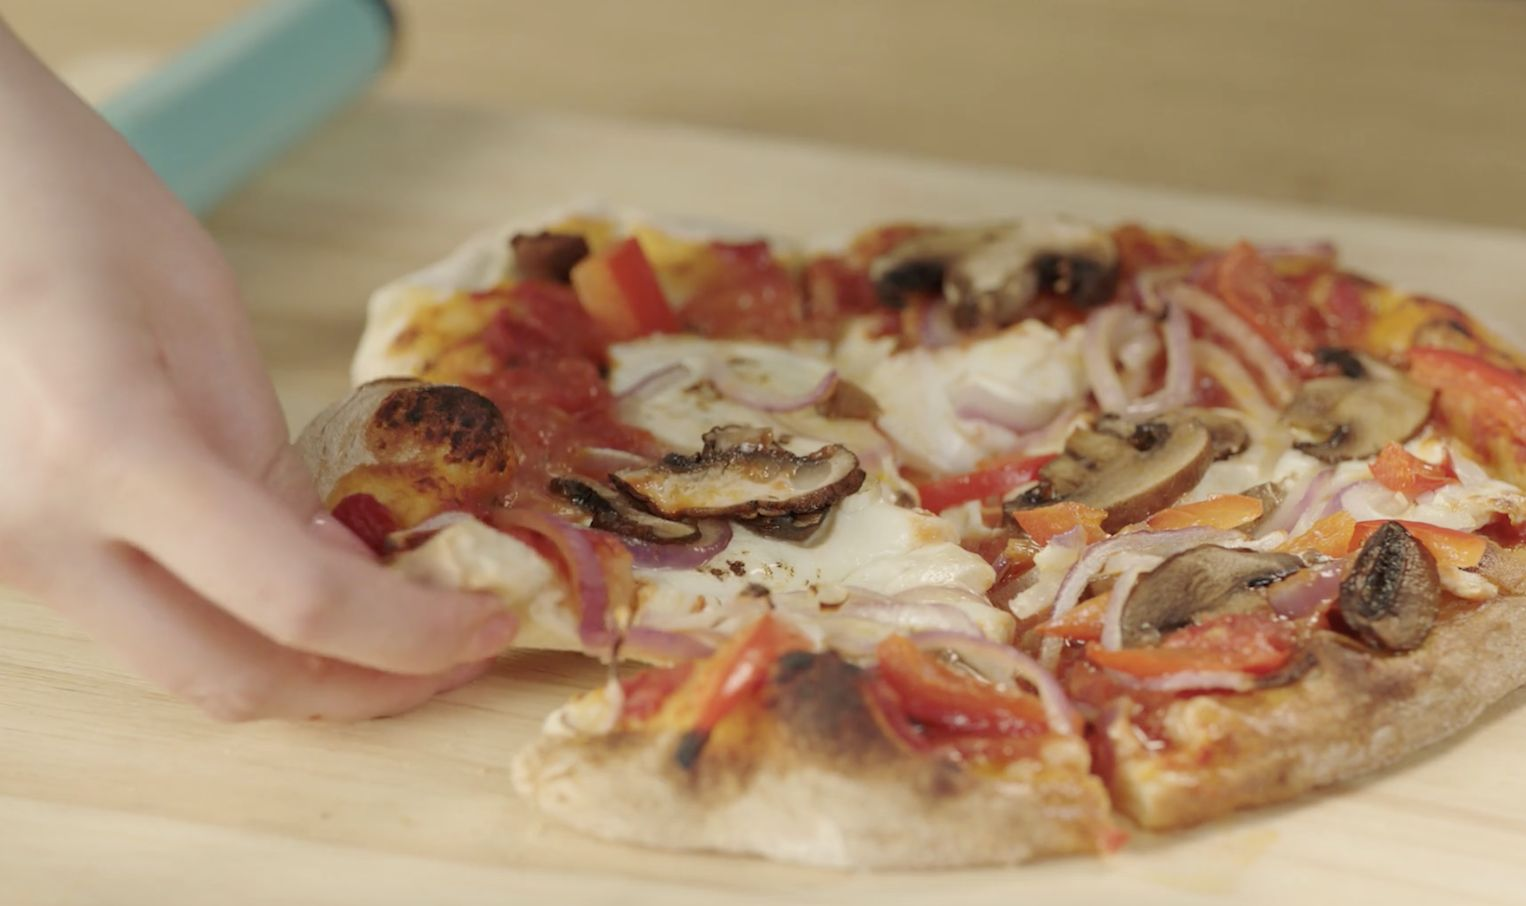 Here's how to make homemade pizza that tastes fresh from the pizzeria